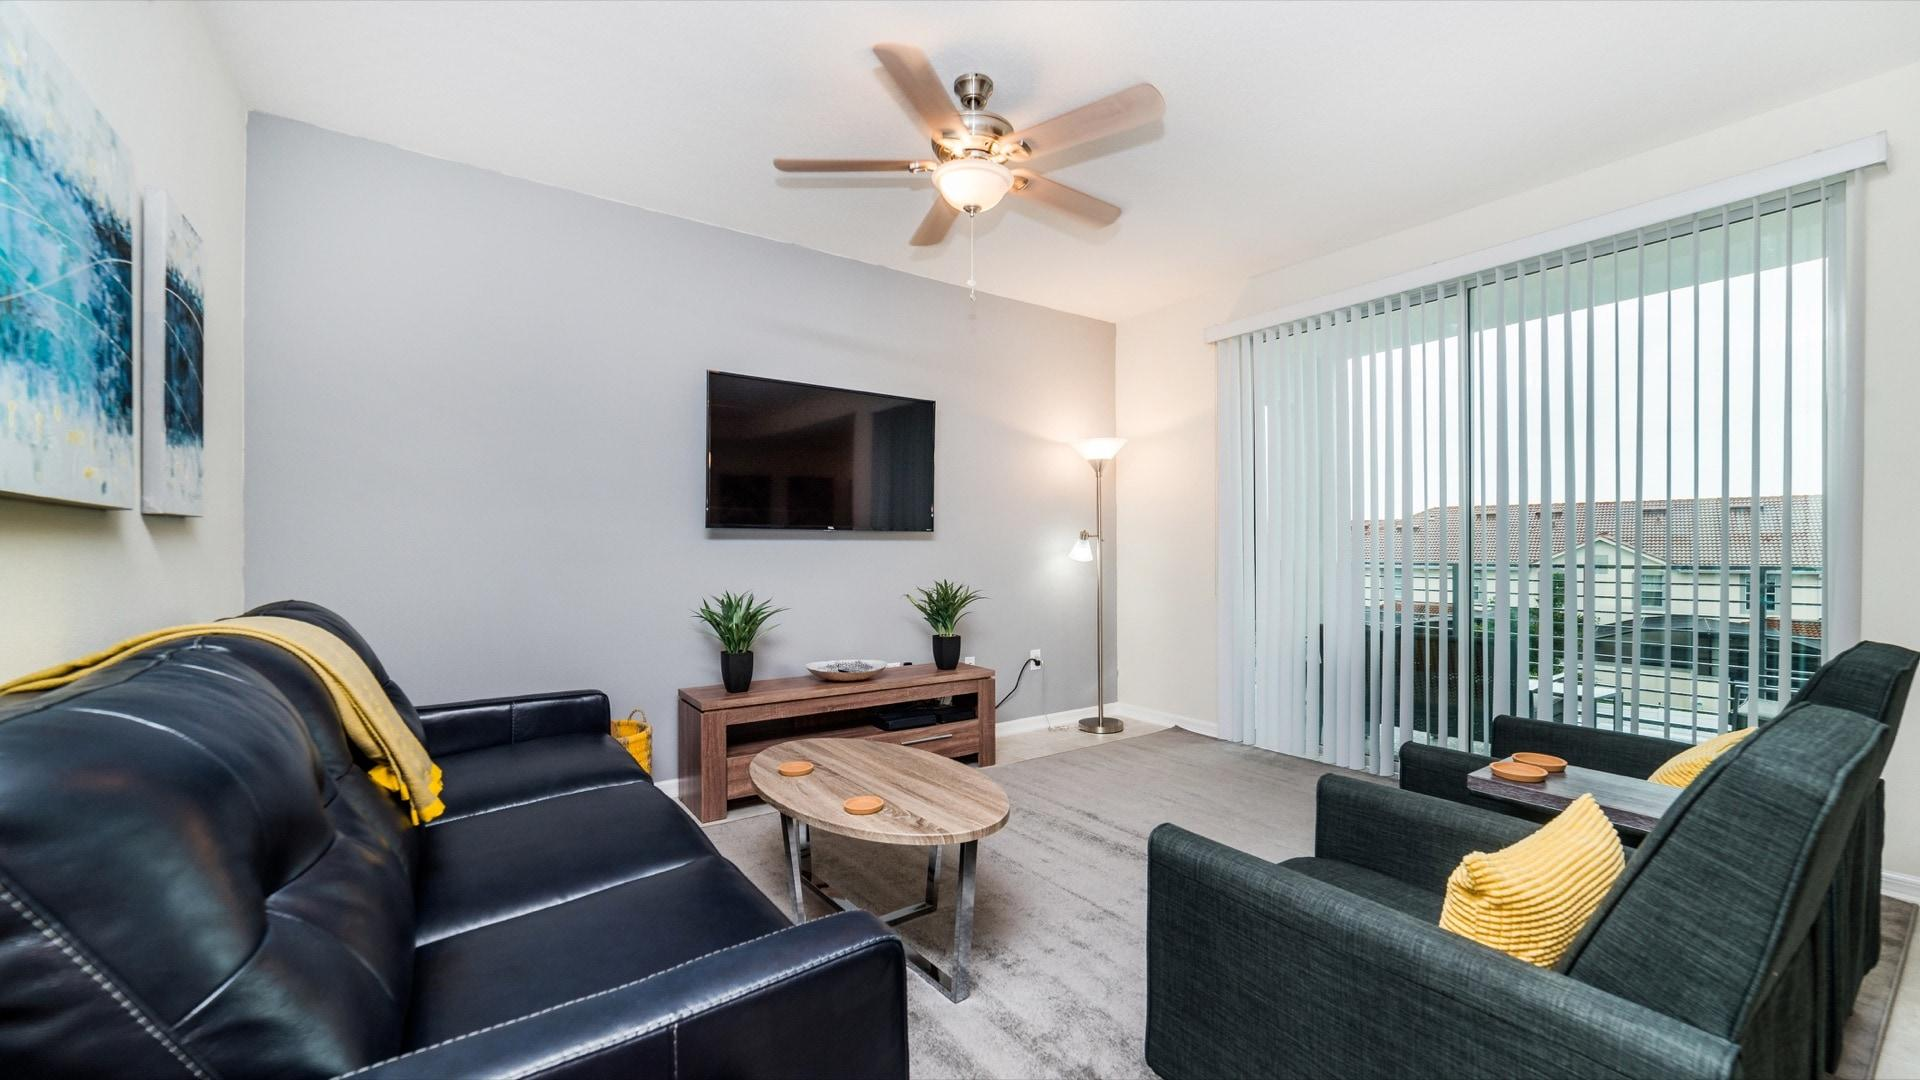 Property Image 2 - Vibrant Modern Condo with Large Living Area Near Disney